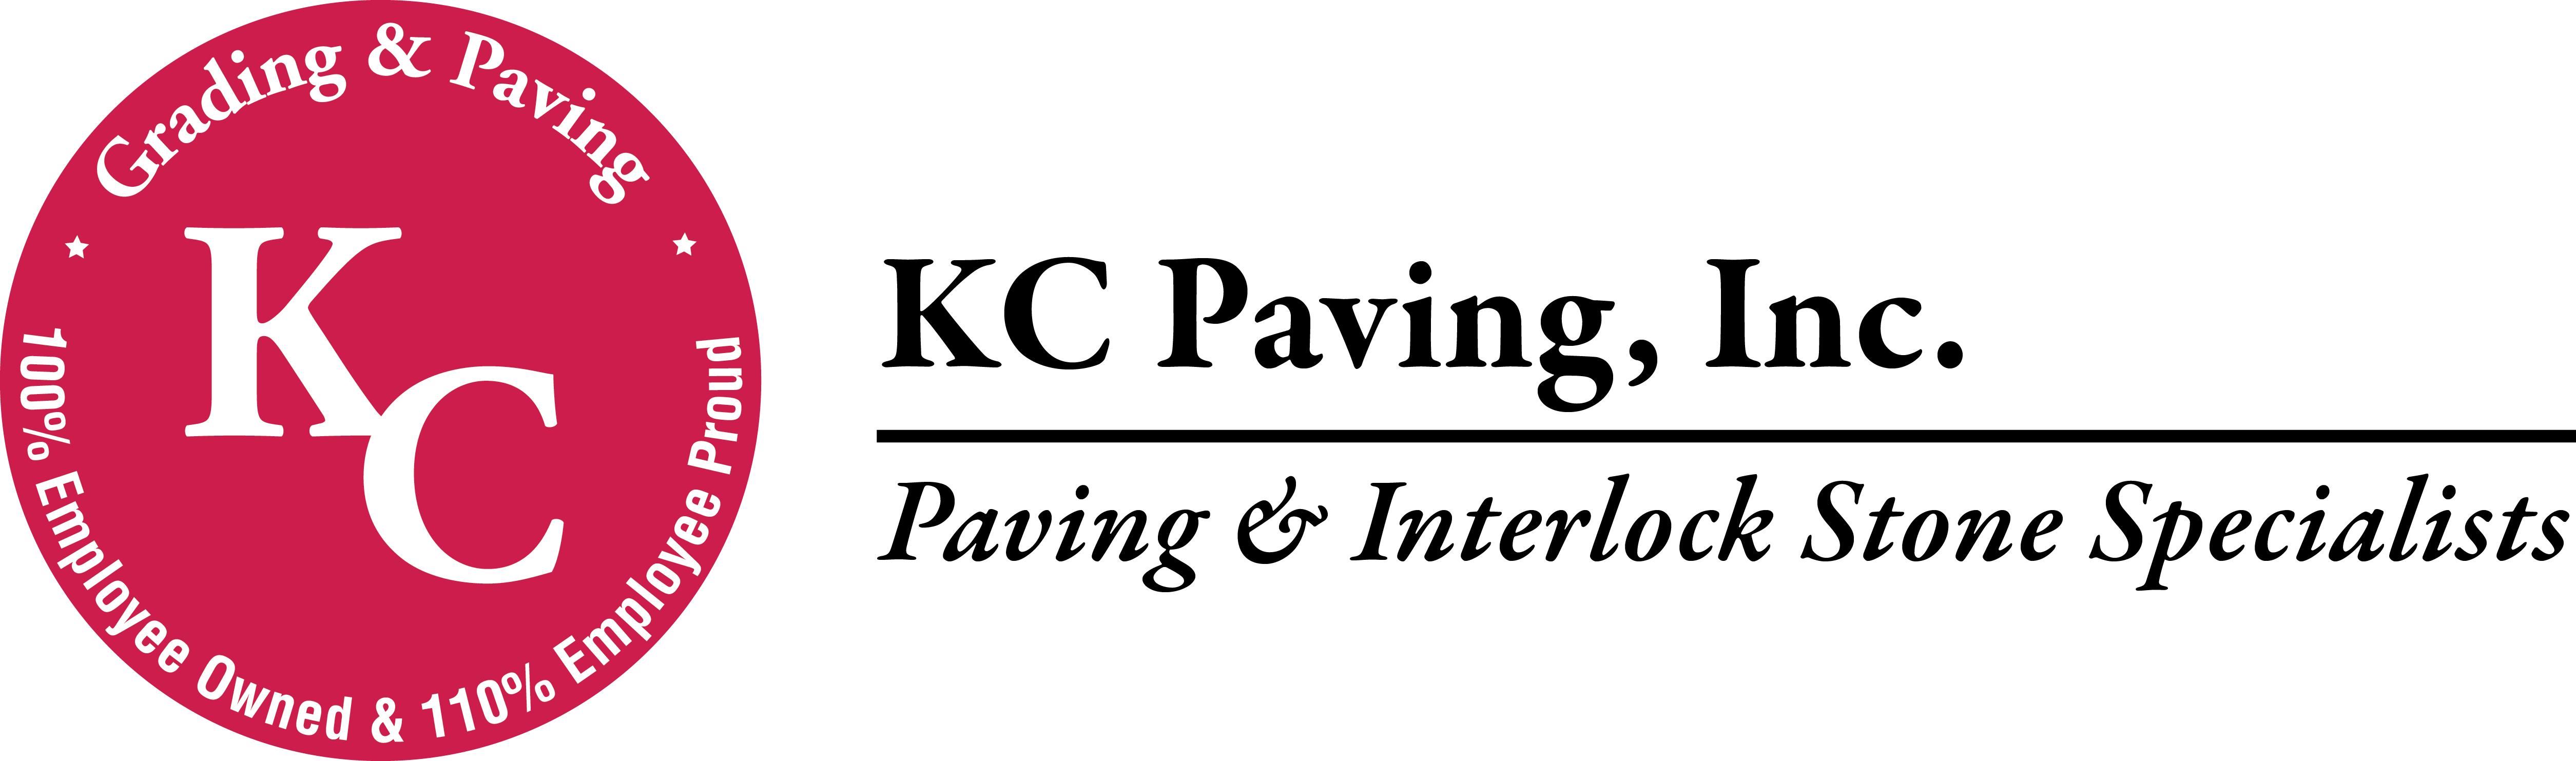 KC Paving, Inc. | SF Bay Area Interlock Pavers, Concrete, Asphalt, Stone